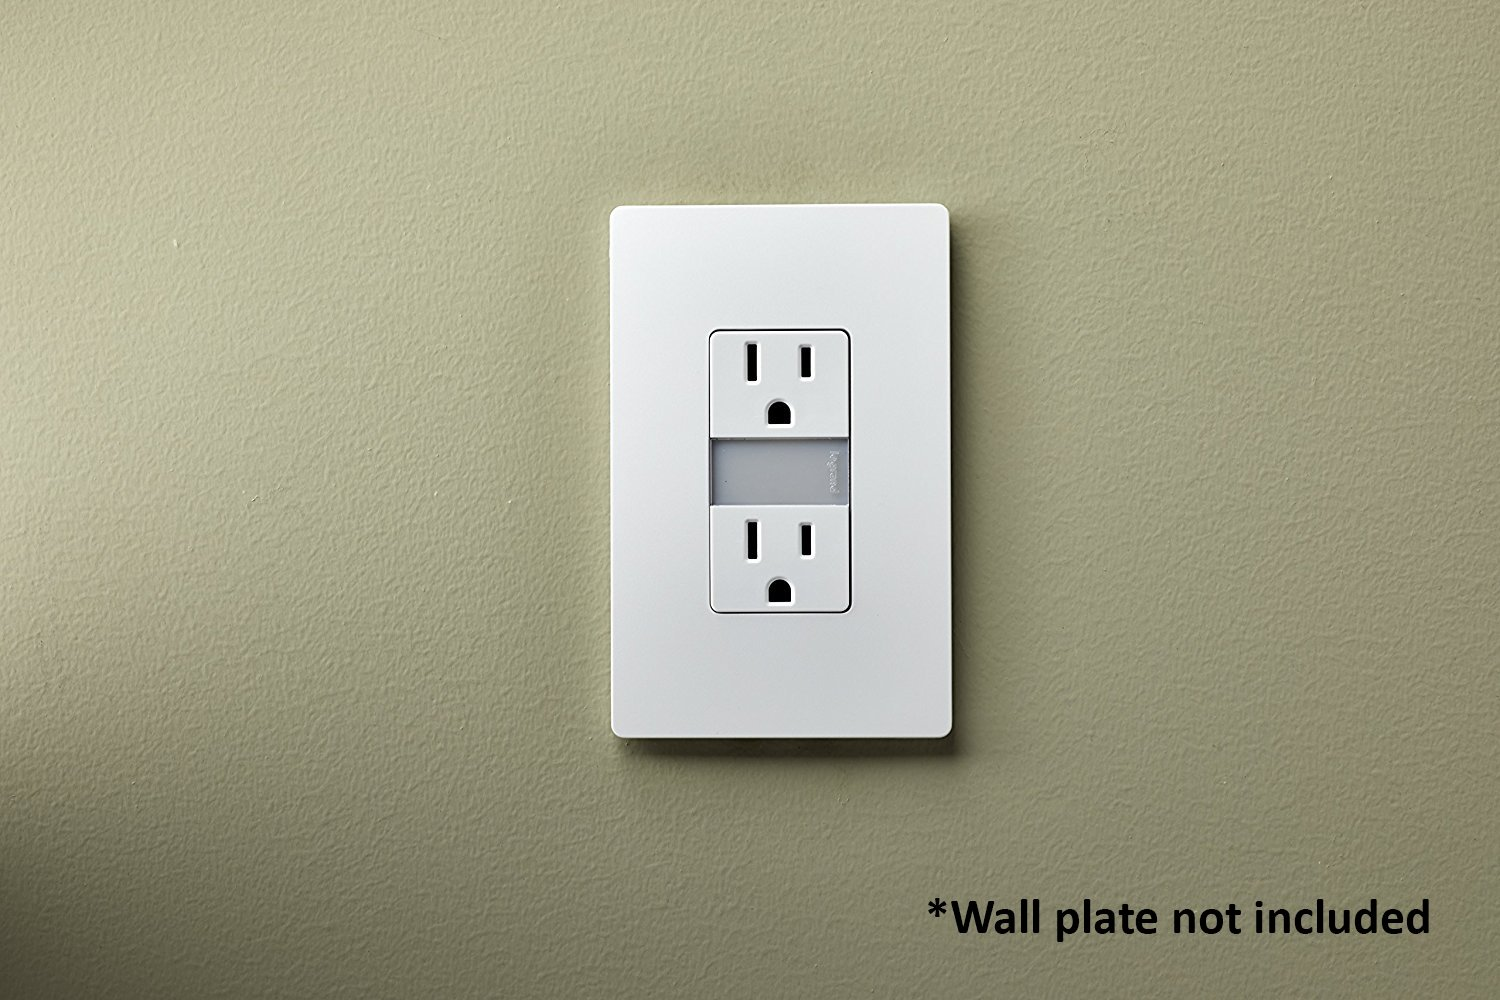 Legrand Pass Seymour Ntl885trwcc6 Led Night Light With Two 15a Decora Triple Rocker Switch Single Pole Pig Tail Black 15 Amp Tamper Resistant Electrical Outlet White